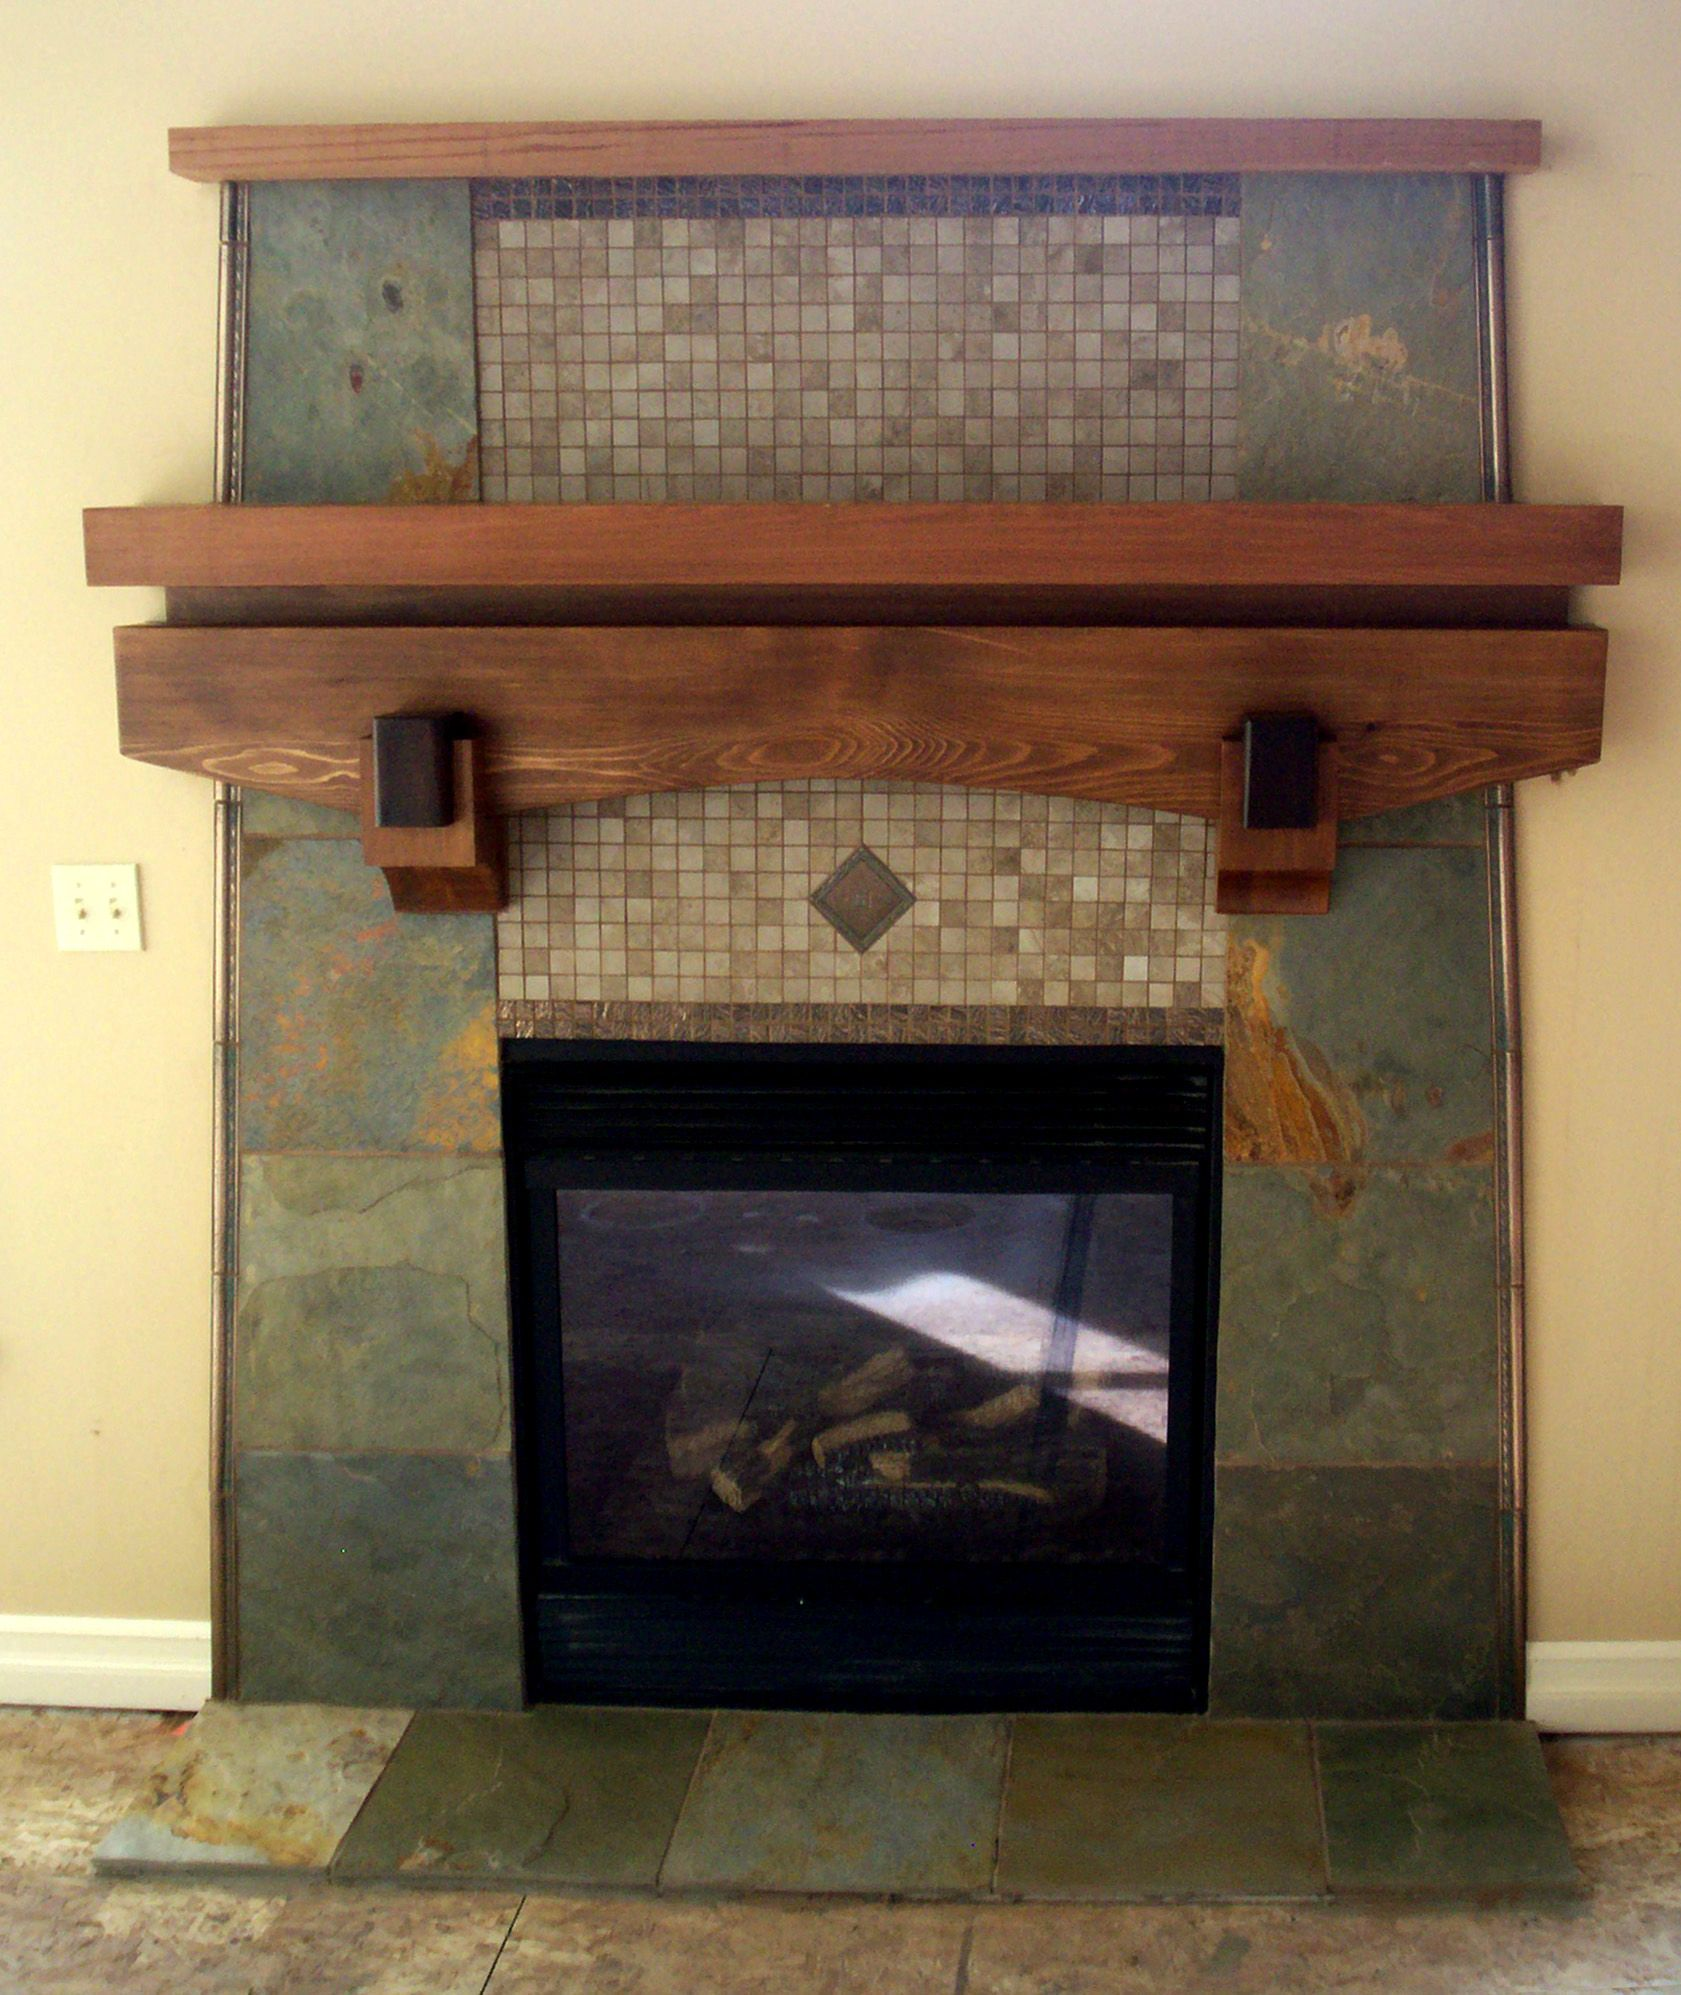 slate fireplace 28 images slate fireplace pictures and ideas on the level home remodeling. Black Bedroom Furniture Sets. Home Design Ideas